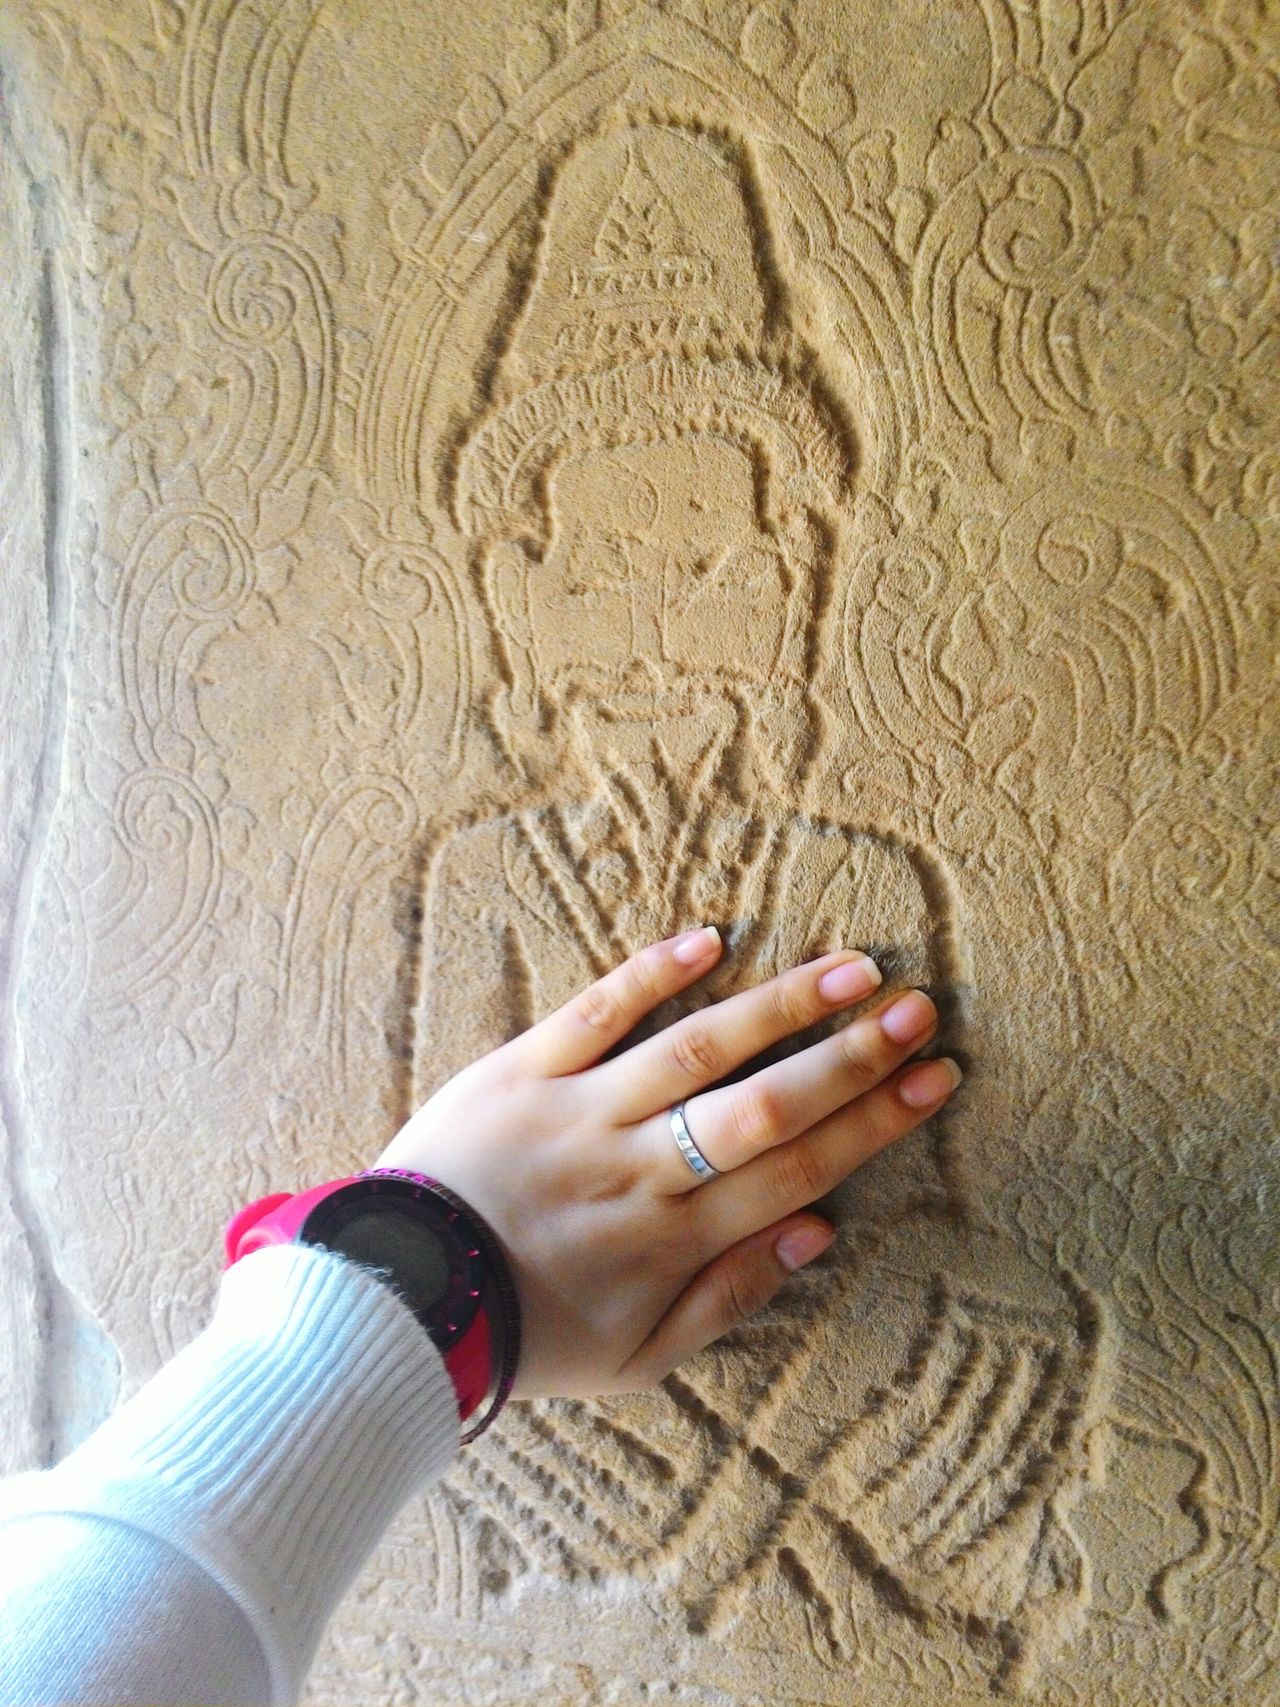 Touched the mystery of the 12th Century